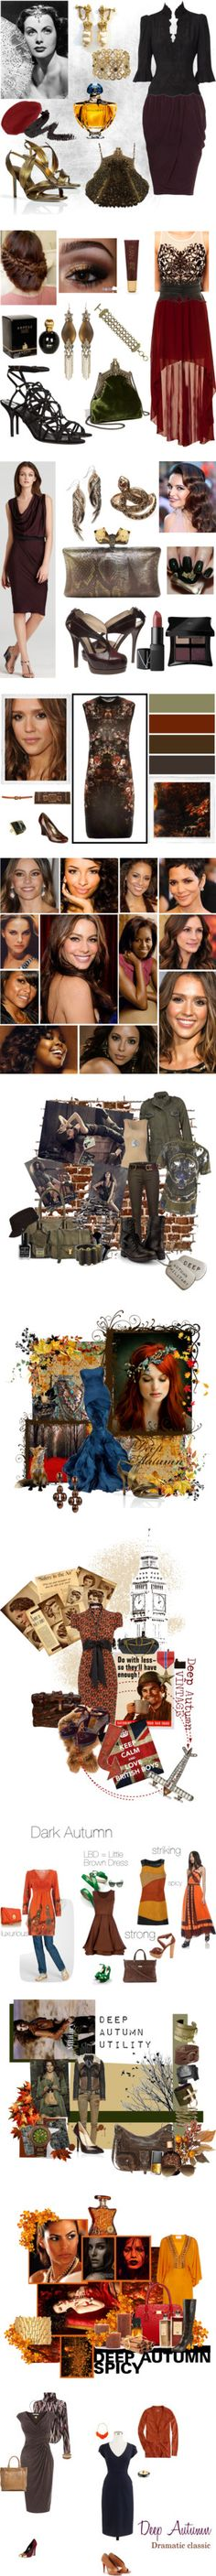 """""""Dark Autumn"""" by authenticbeauty on Polyvore"""